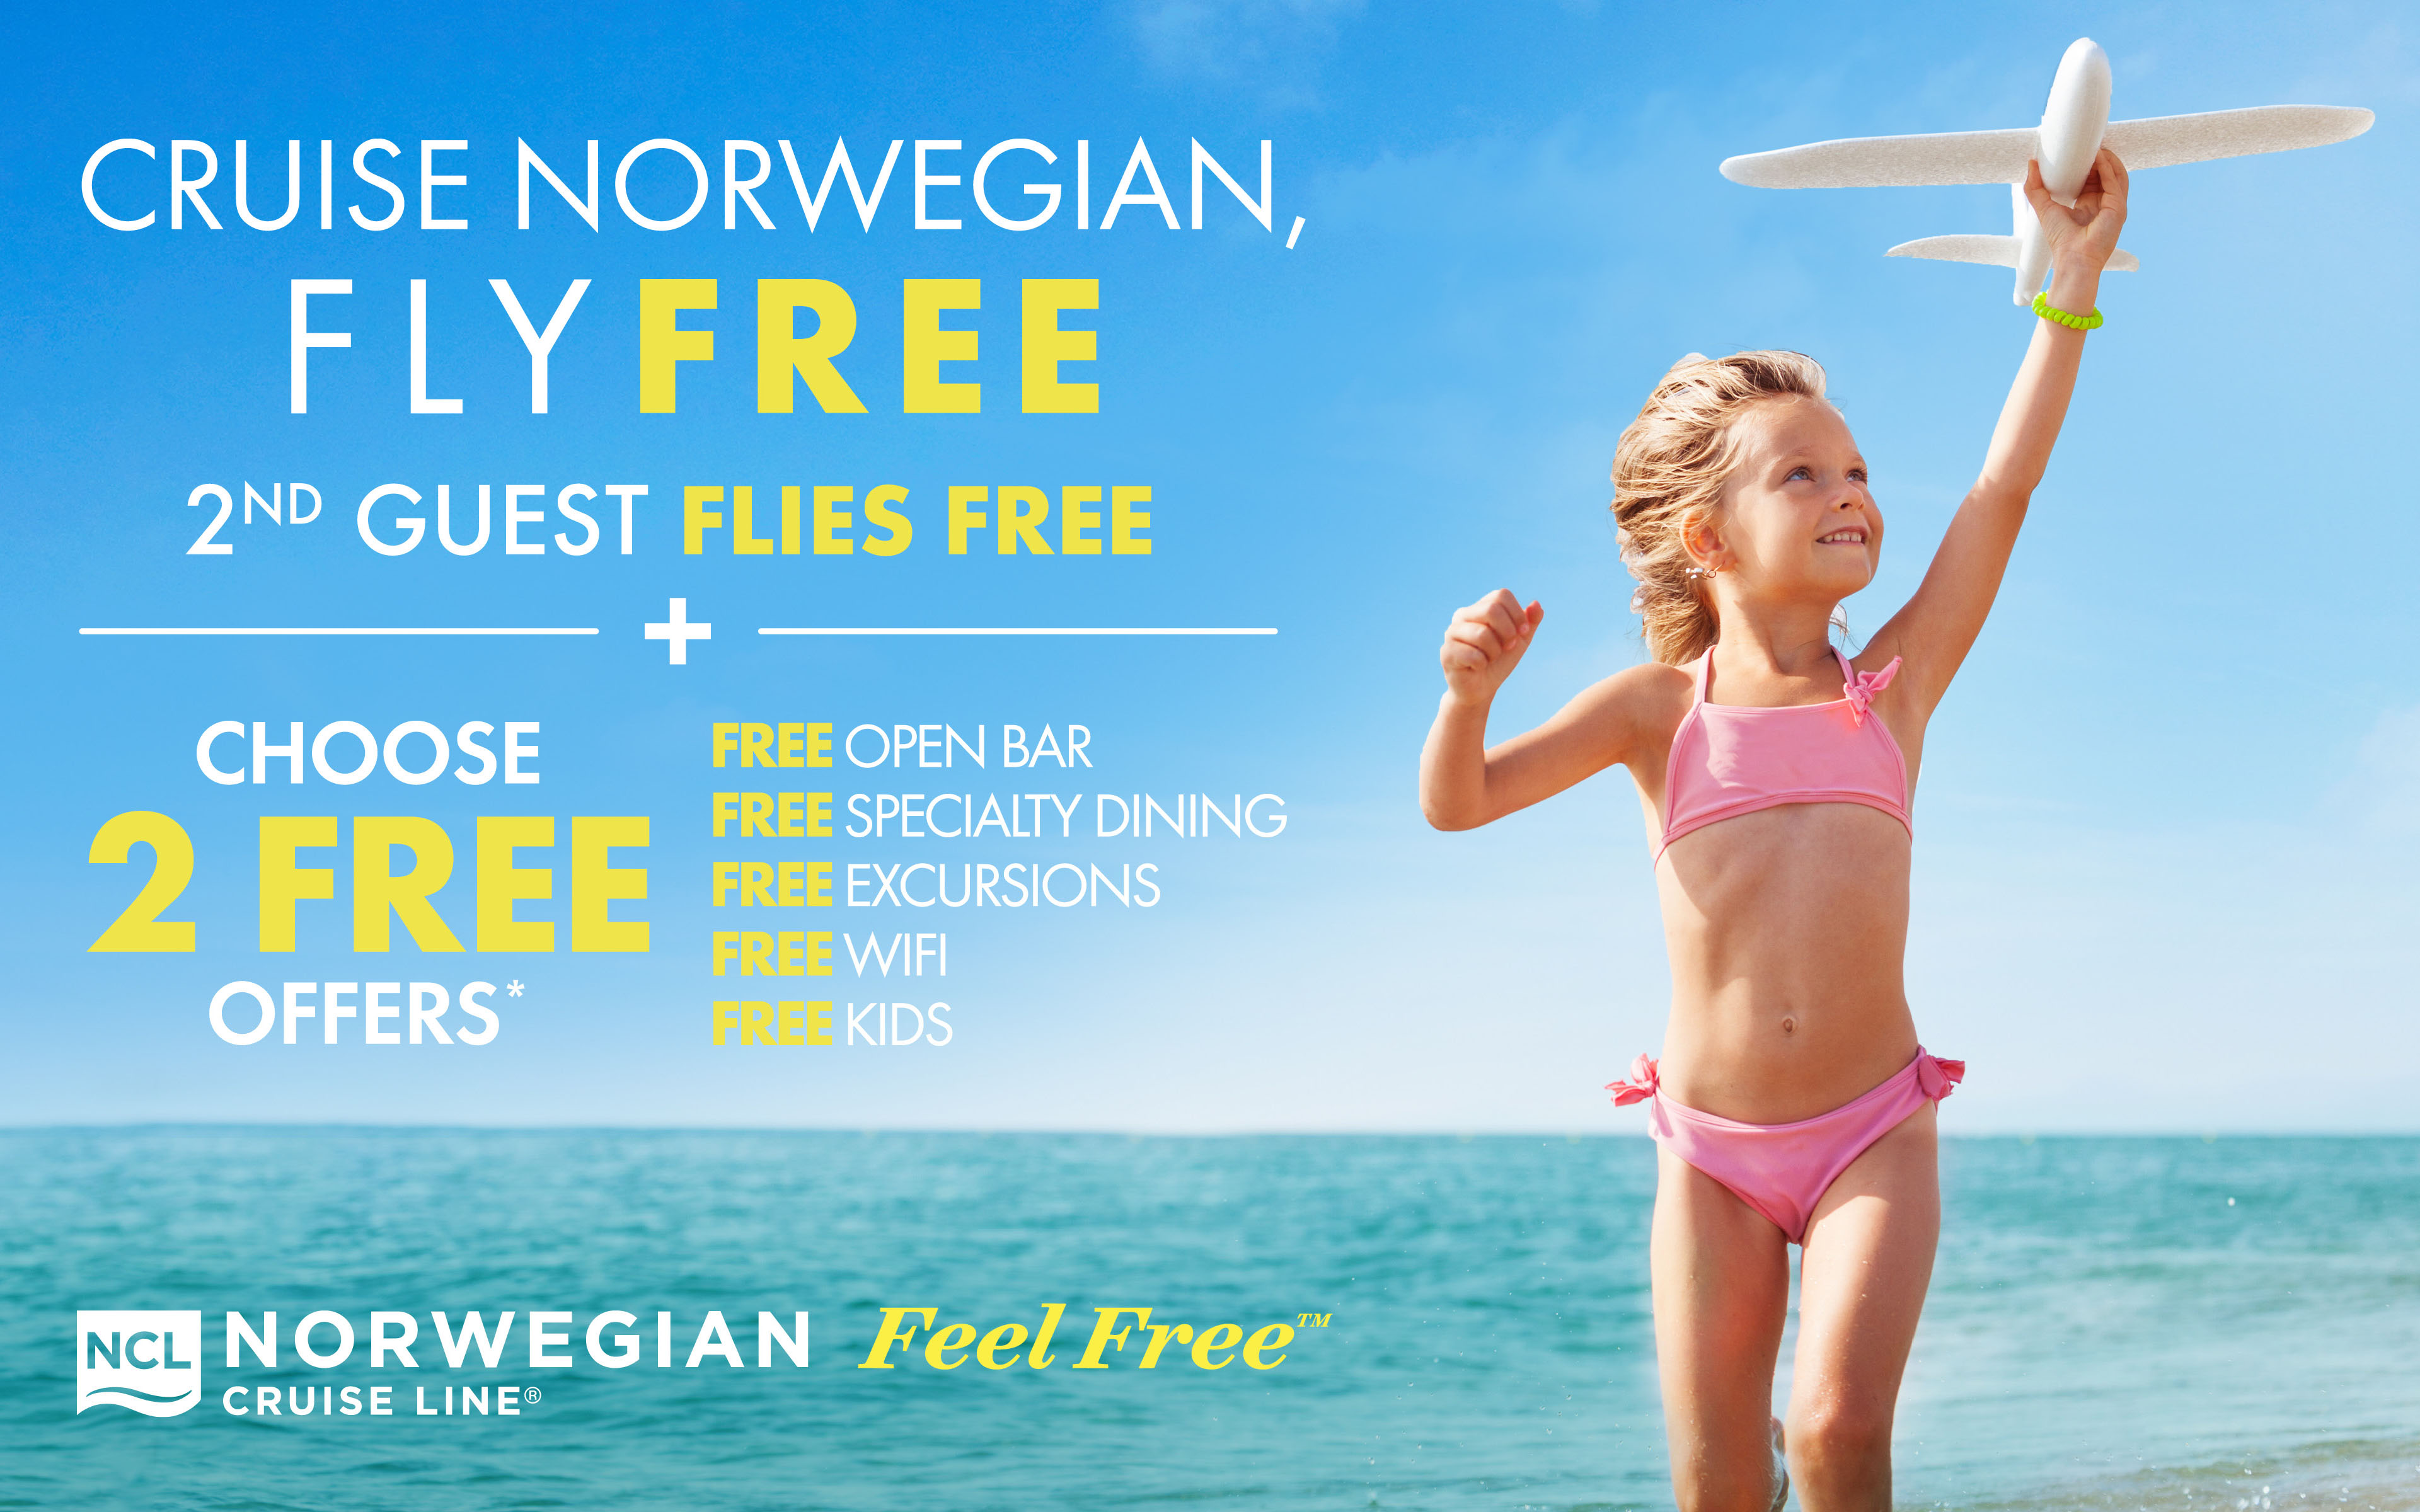 Fly FREE + Choose 2 FREE Offers with Norwegian